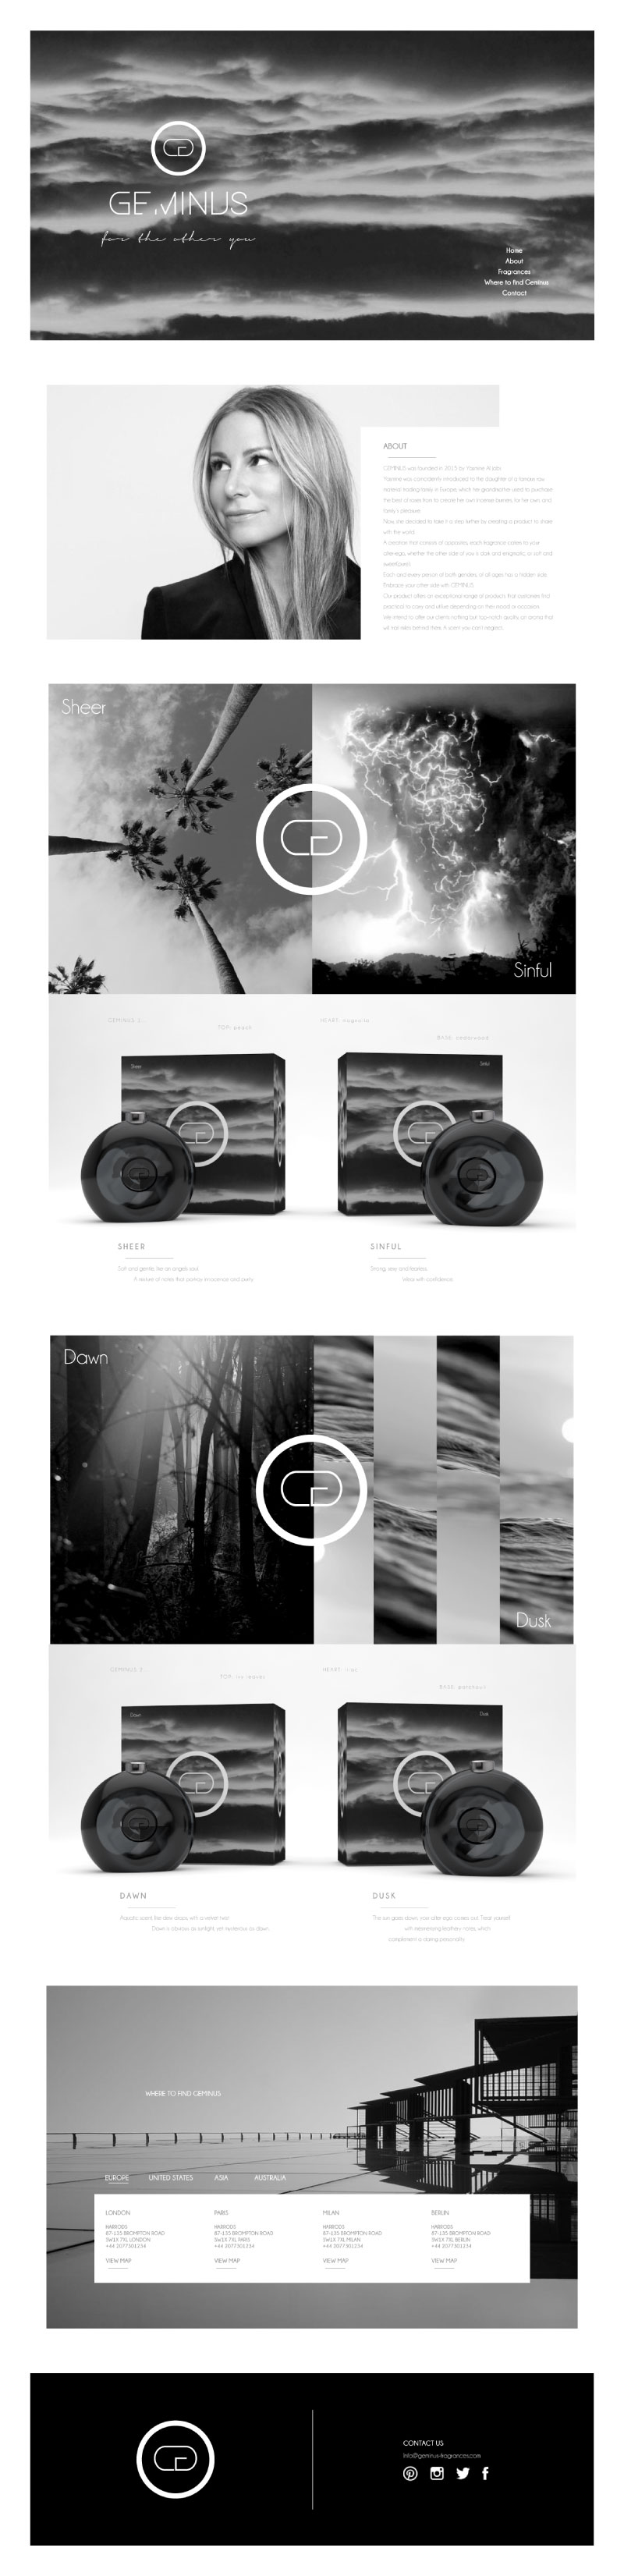 Cafe Studios Design - Homepage Preview _ G Perfumes